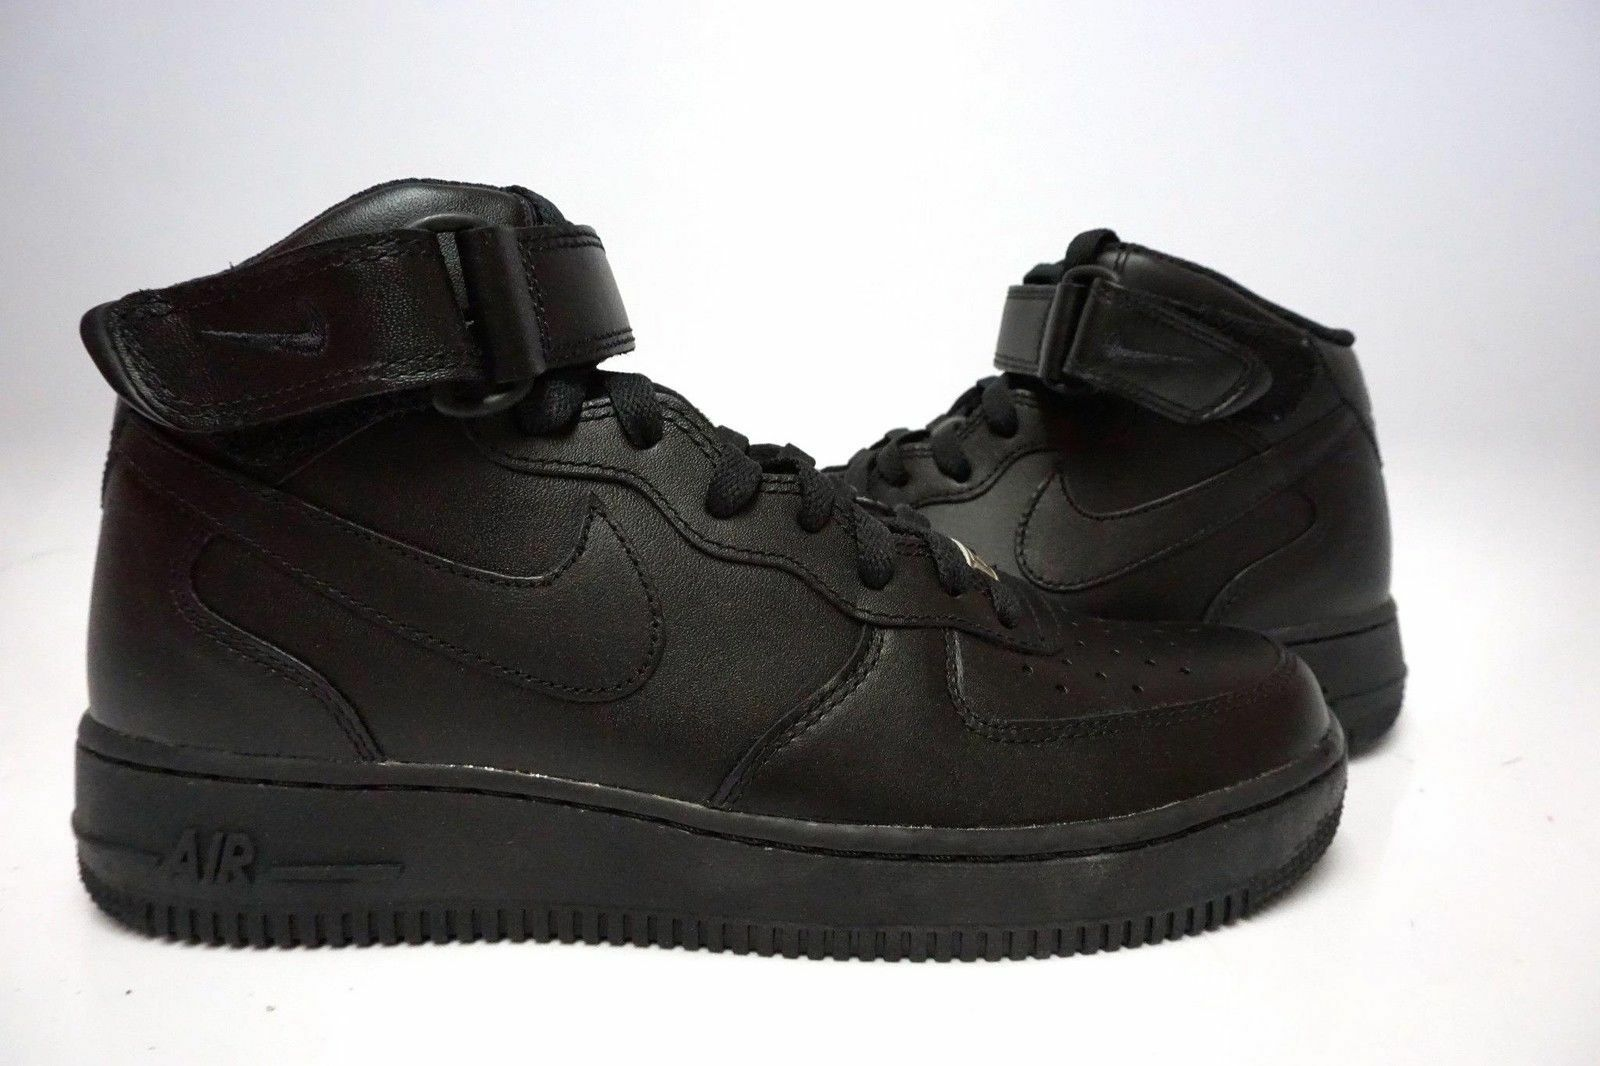 (315123-001) MEN'S NIKE AIR FORCE 1 MID '07 BLACK/BLACK